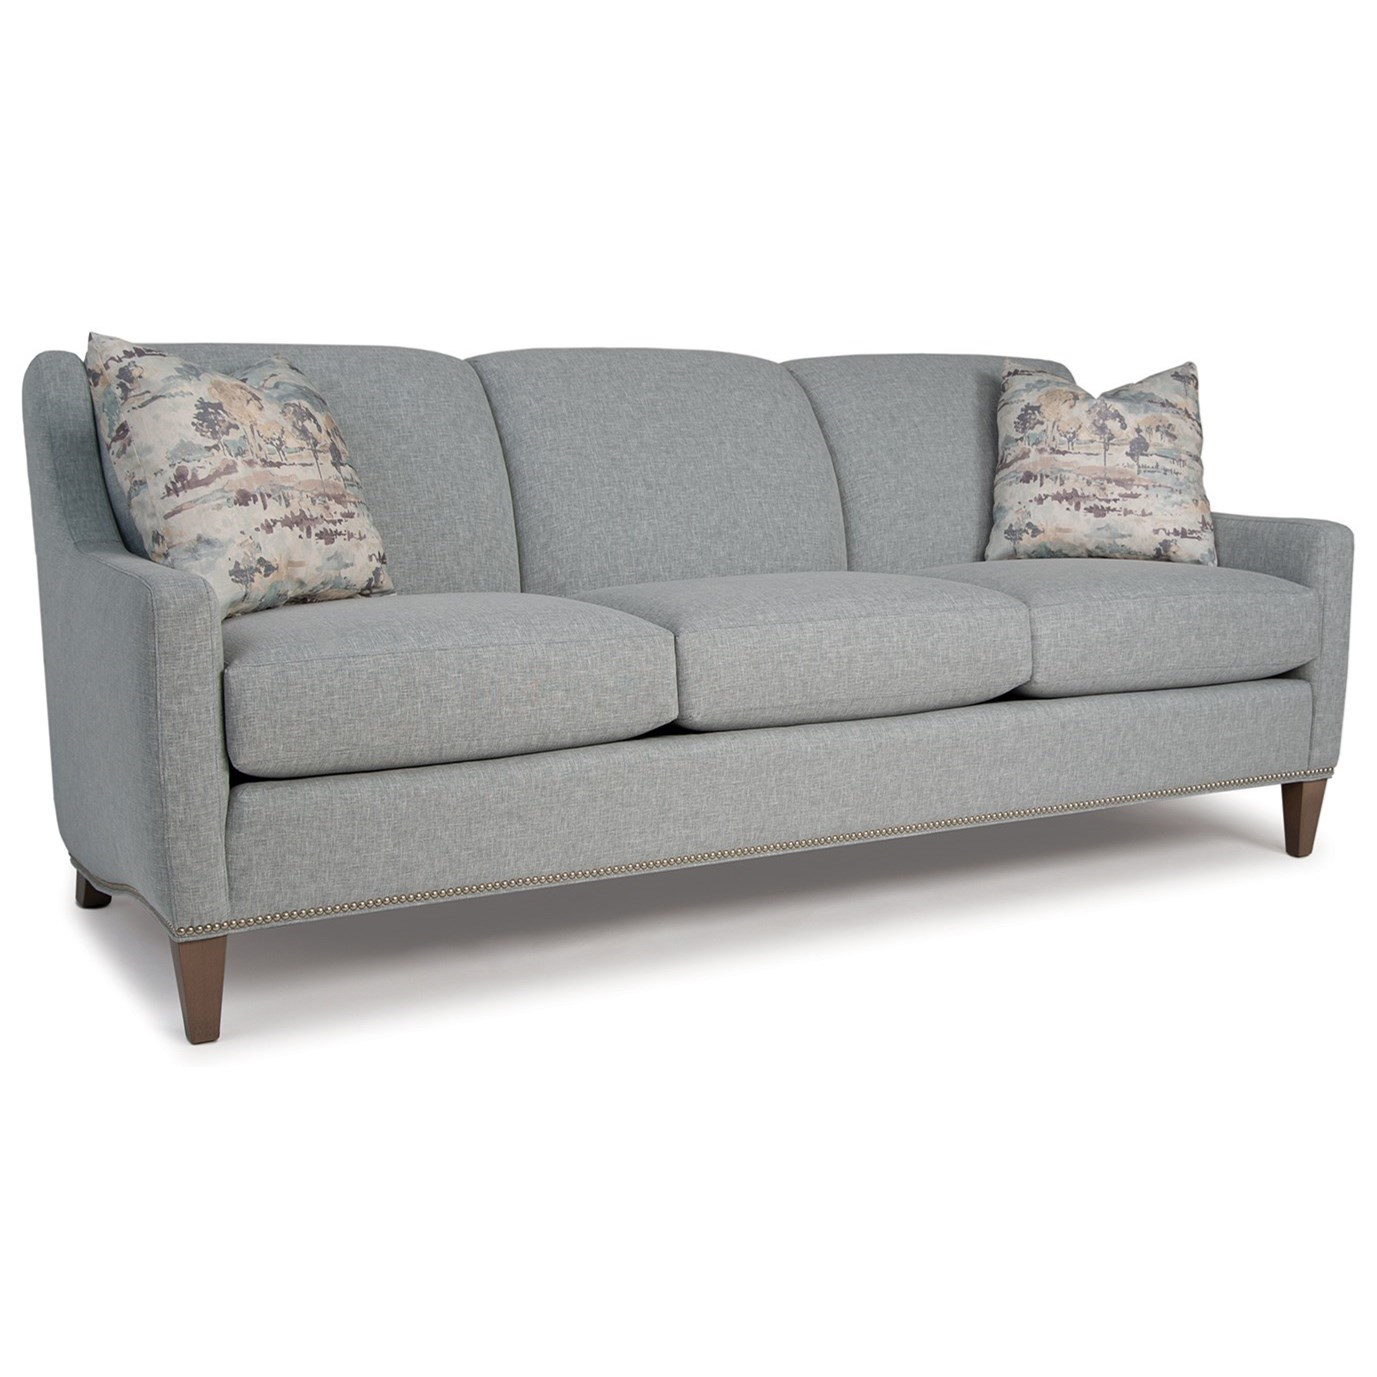 271 Sofa by Smith Brothers at Turk Furniture